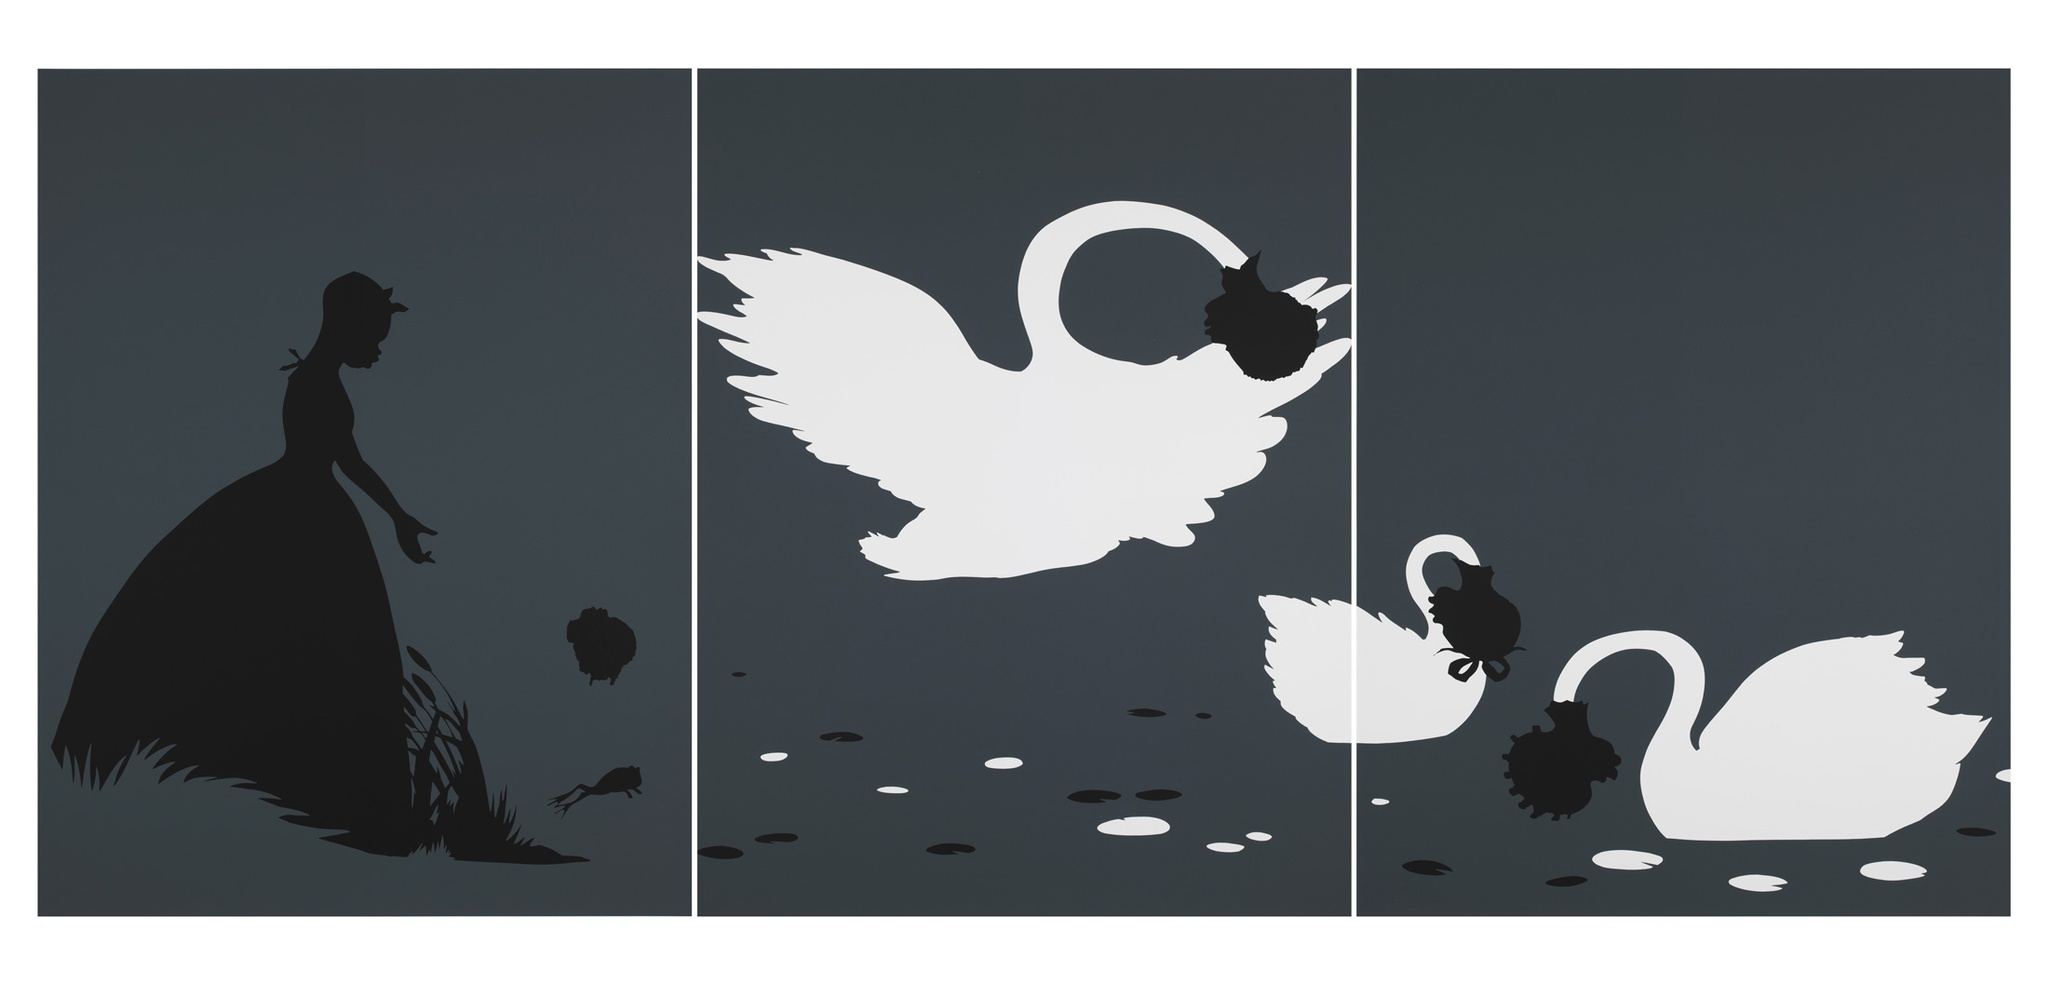 Kara Walker, The Emancipation Approximation, 1999–2000, 3 of 27 screen prints on Somerest 500G paper, Ed. AP 5/5, Tang Teaching Museum collection, gift of Michael Jenkins and Javier Romero, 2015.23.1.1–28